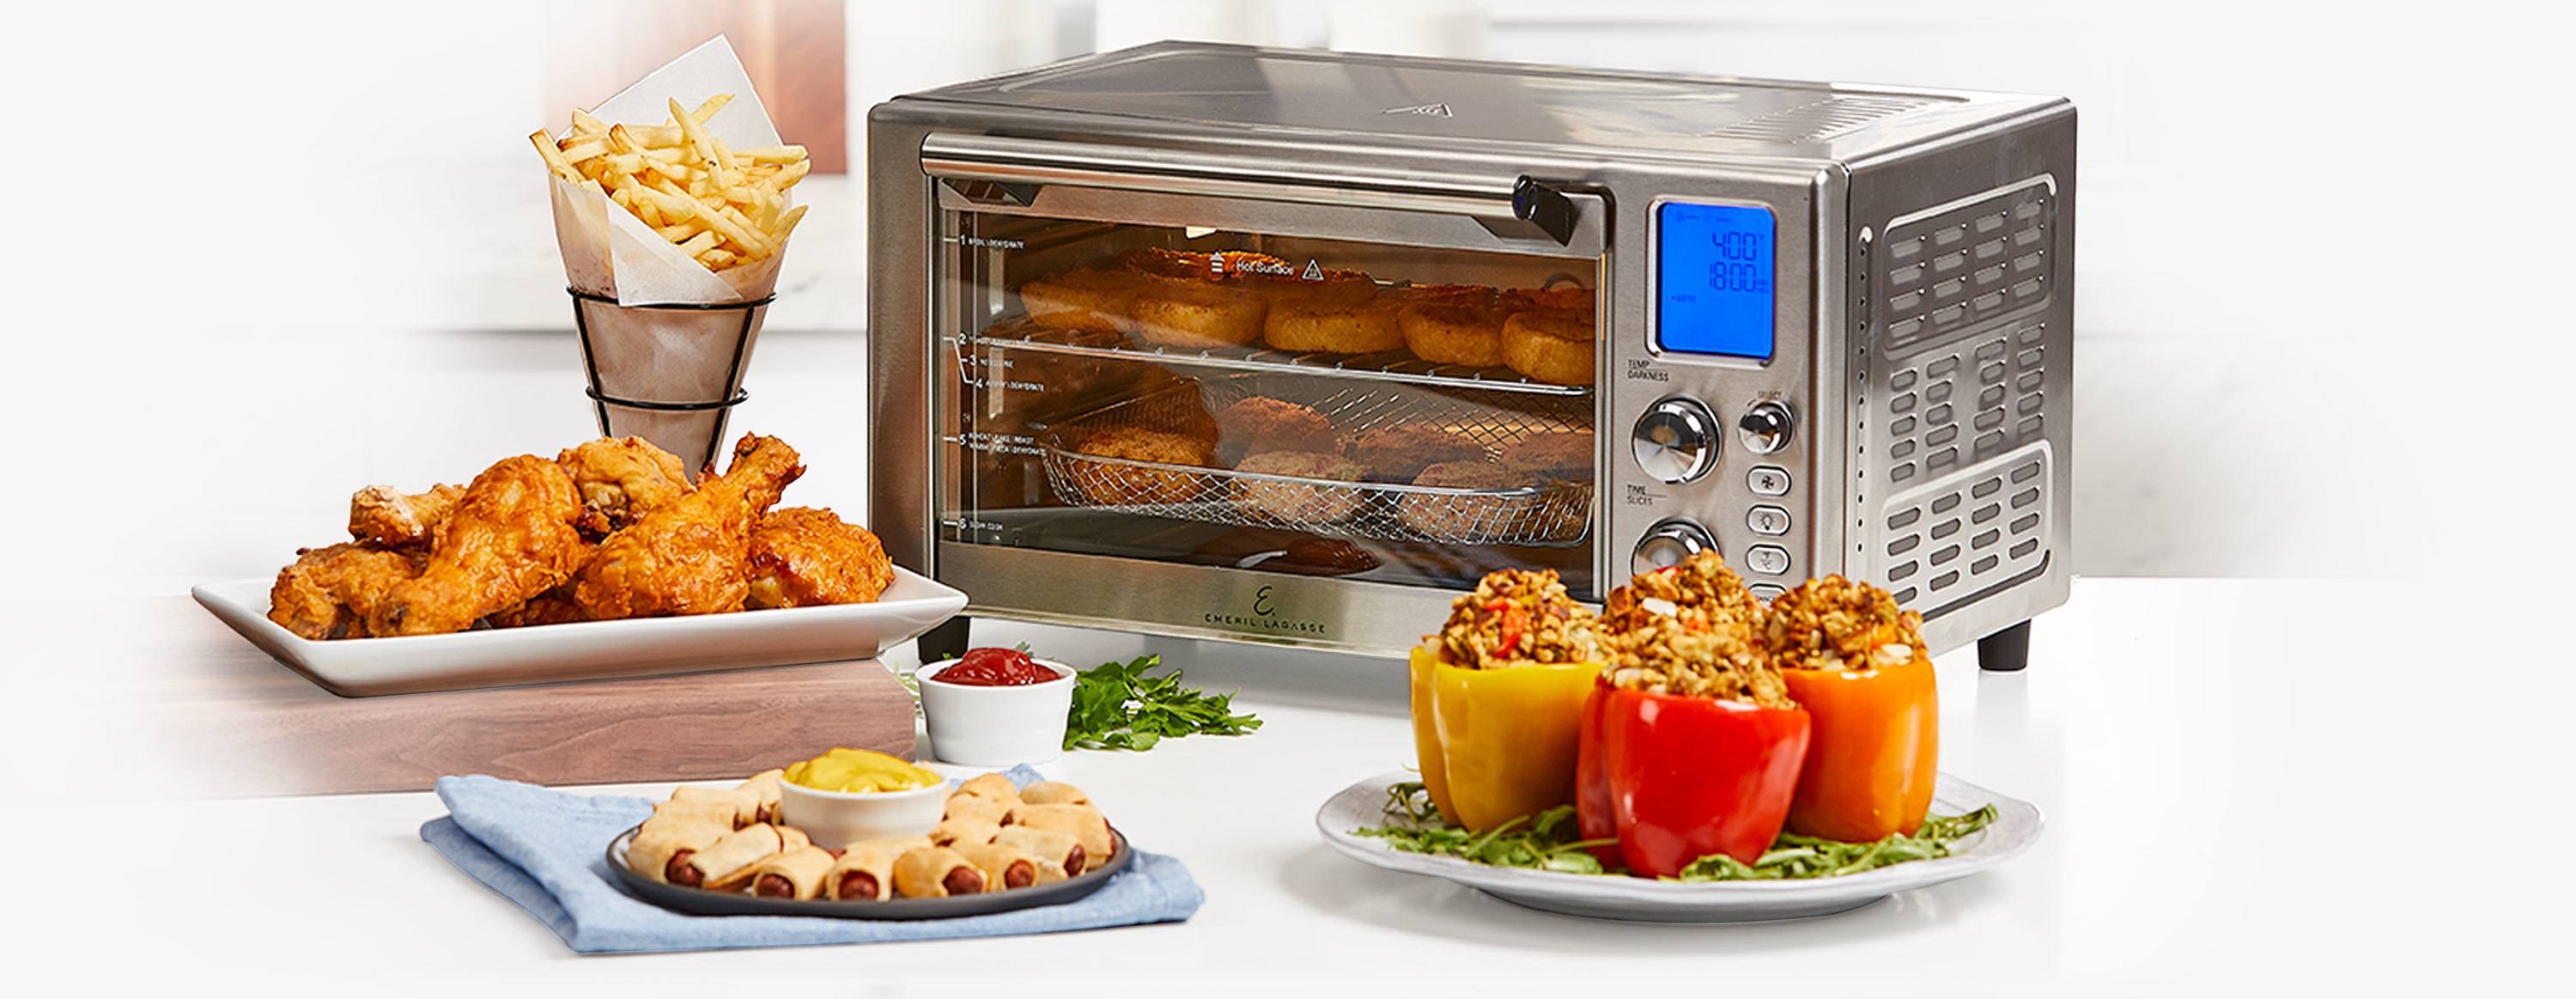 Use Emeril Lagasse Power Air Fryer to make Fried Chicken, Fried Stuffed Peppers, Pigs in a Blanket, French Fries, Onion Rings , Biscuits and more